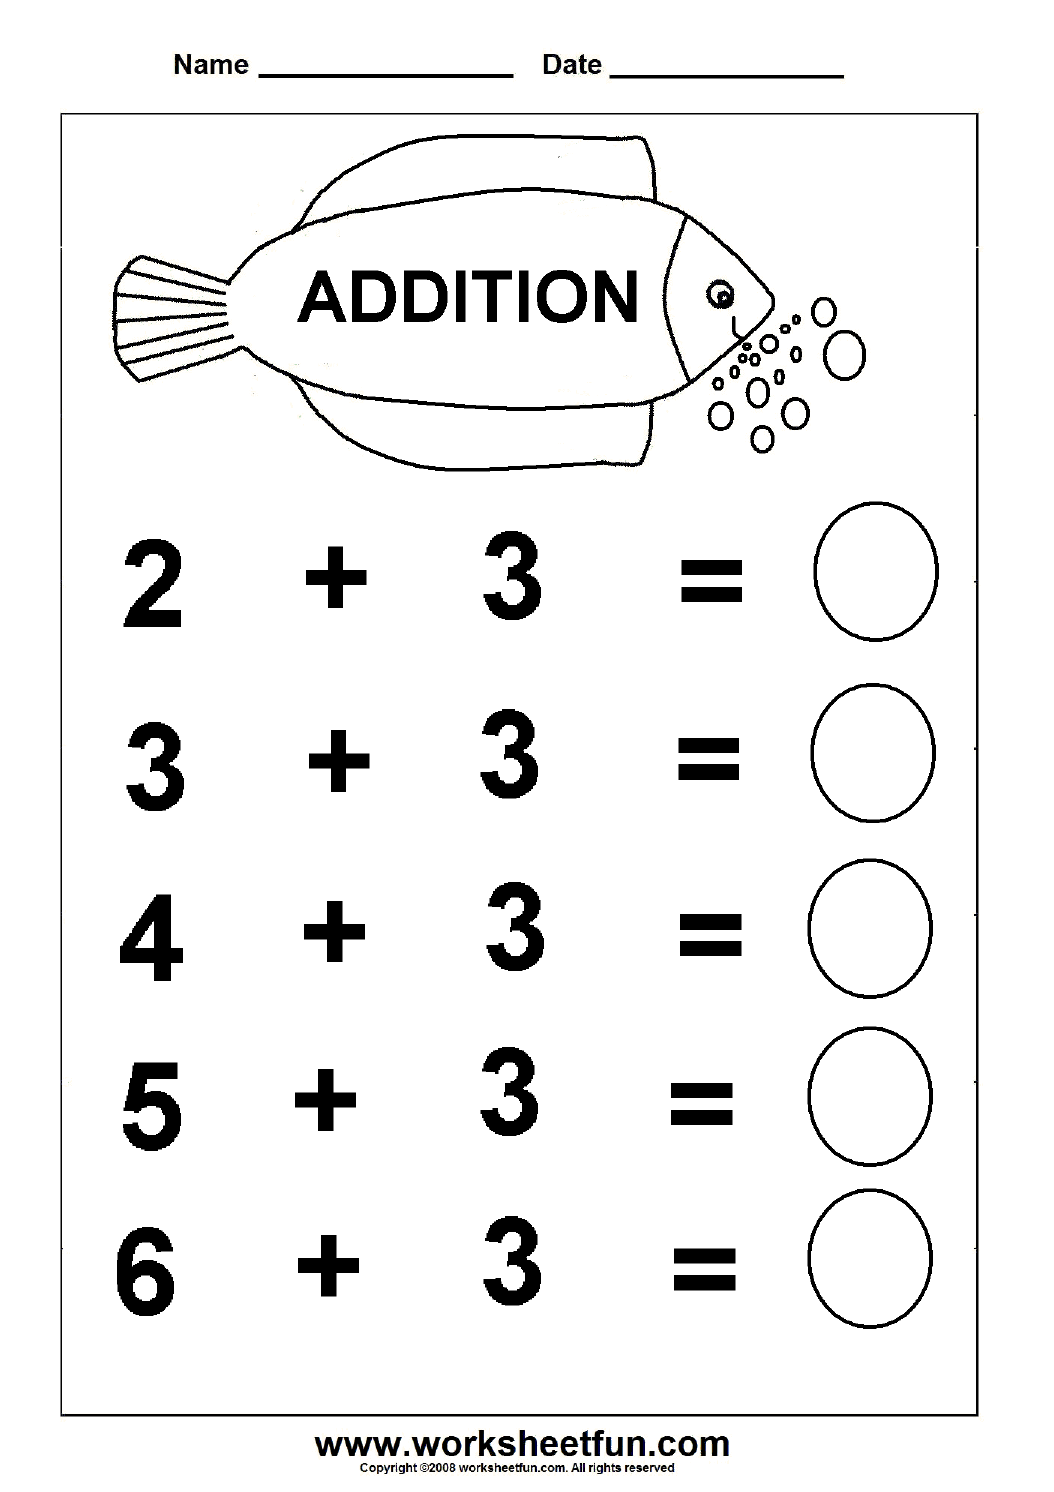 Addition Basic Addition Facts FREE Printable Worksheets – Simple Addition Worksheets Free